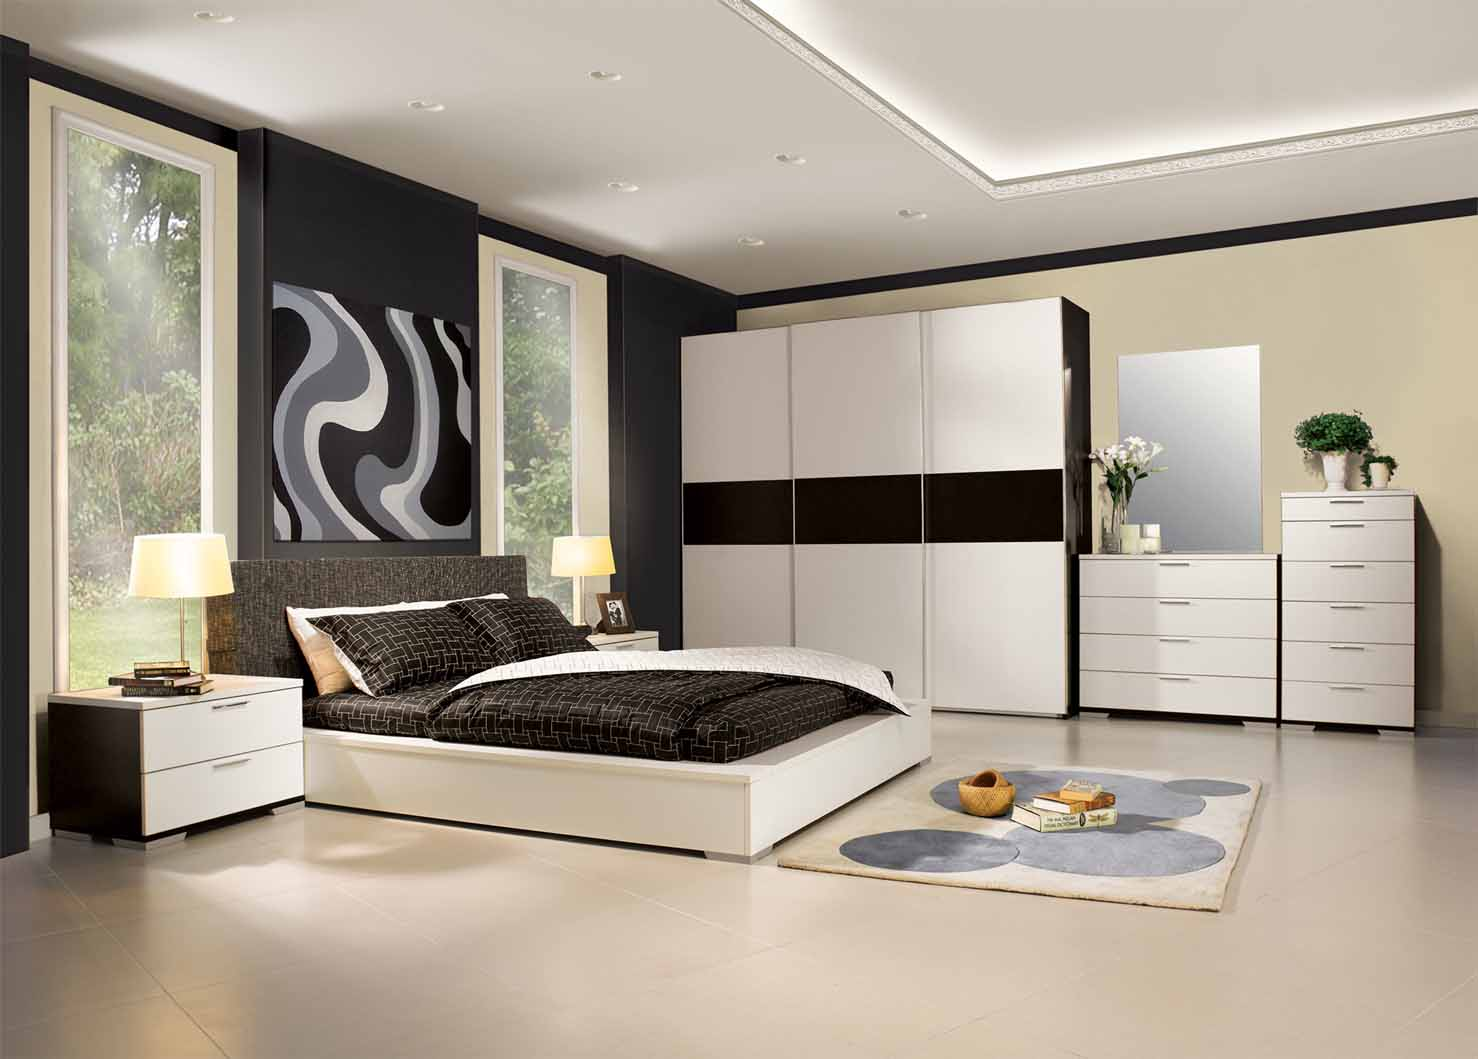 Bedroom furniture dream house experience - Modern bedroom decorating ideas ...